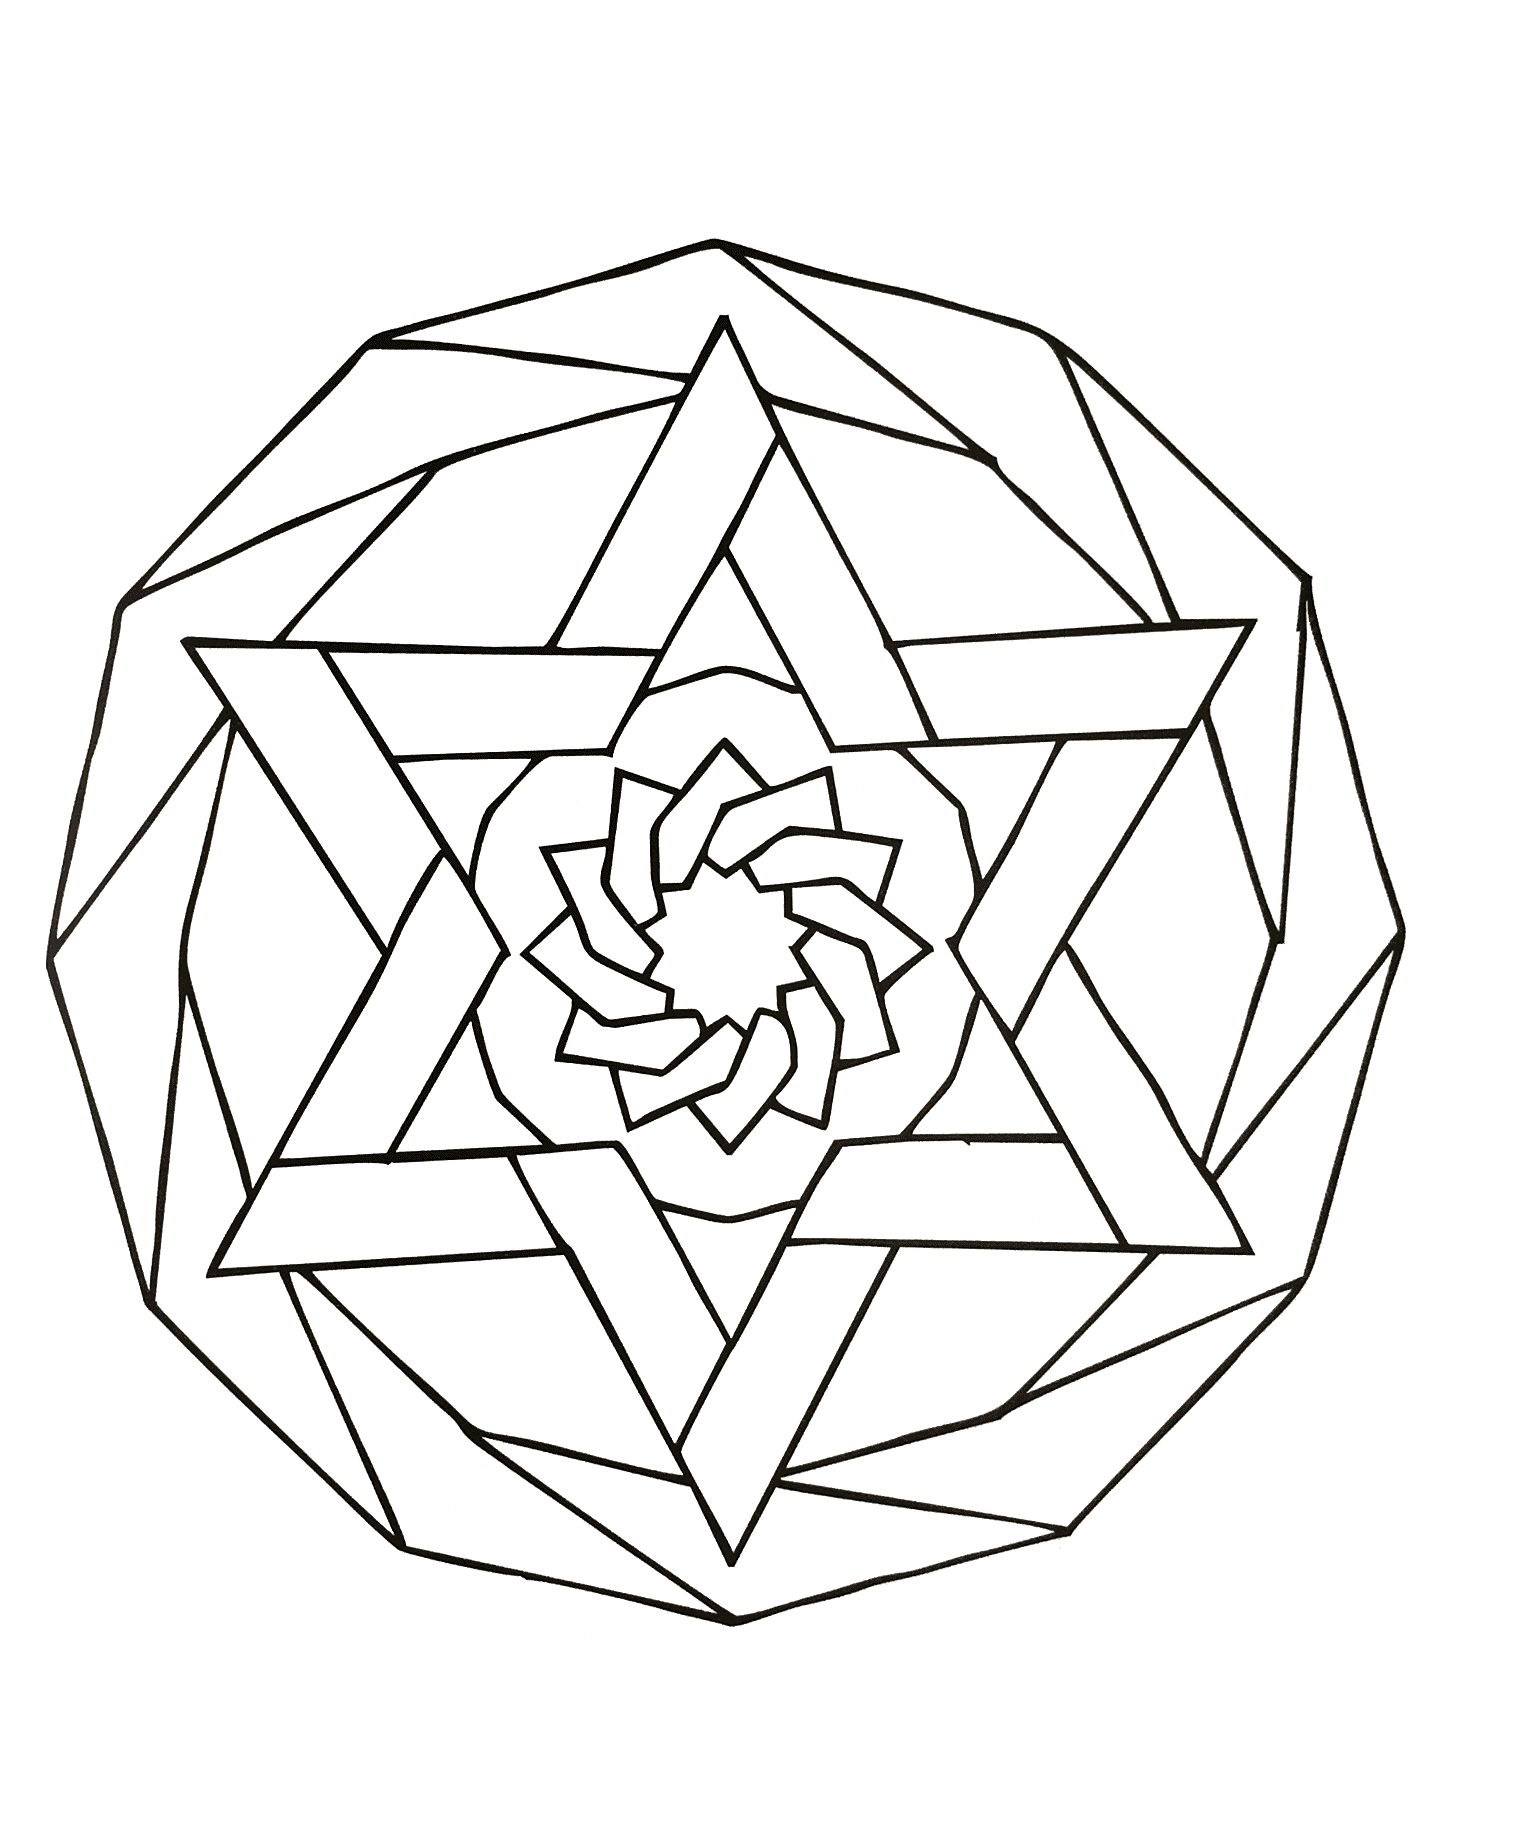 simple mandala 88 mandalas coloring pages for kids to print u0026 color